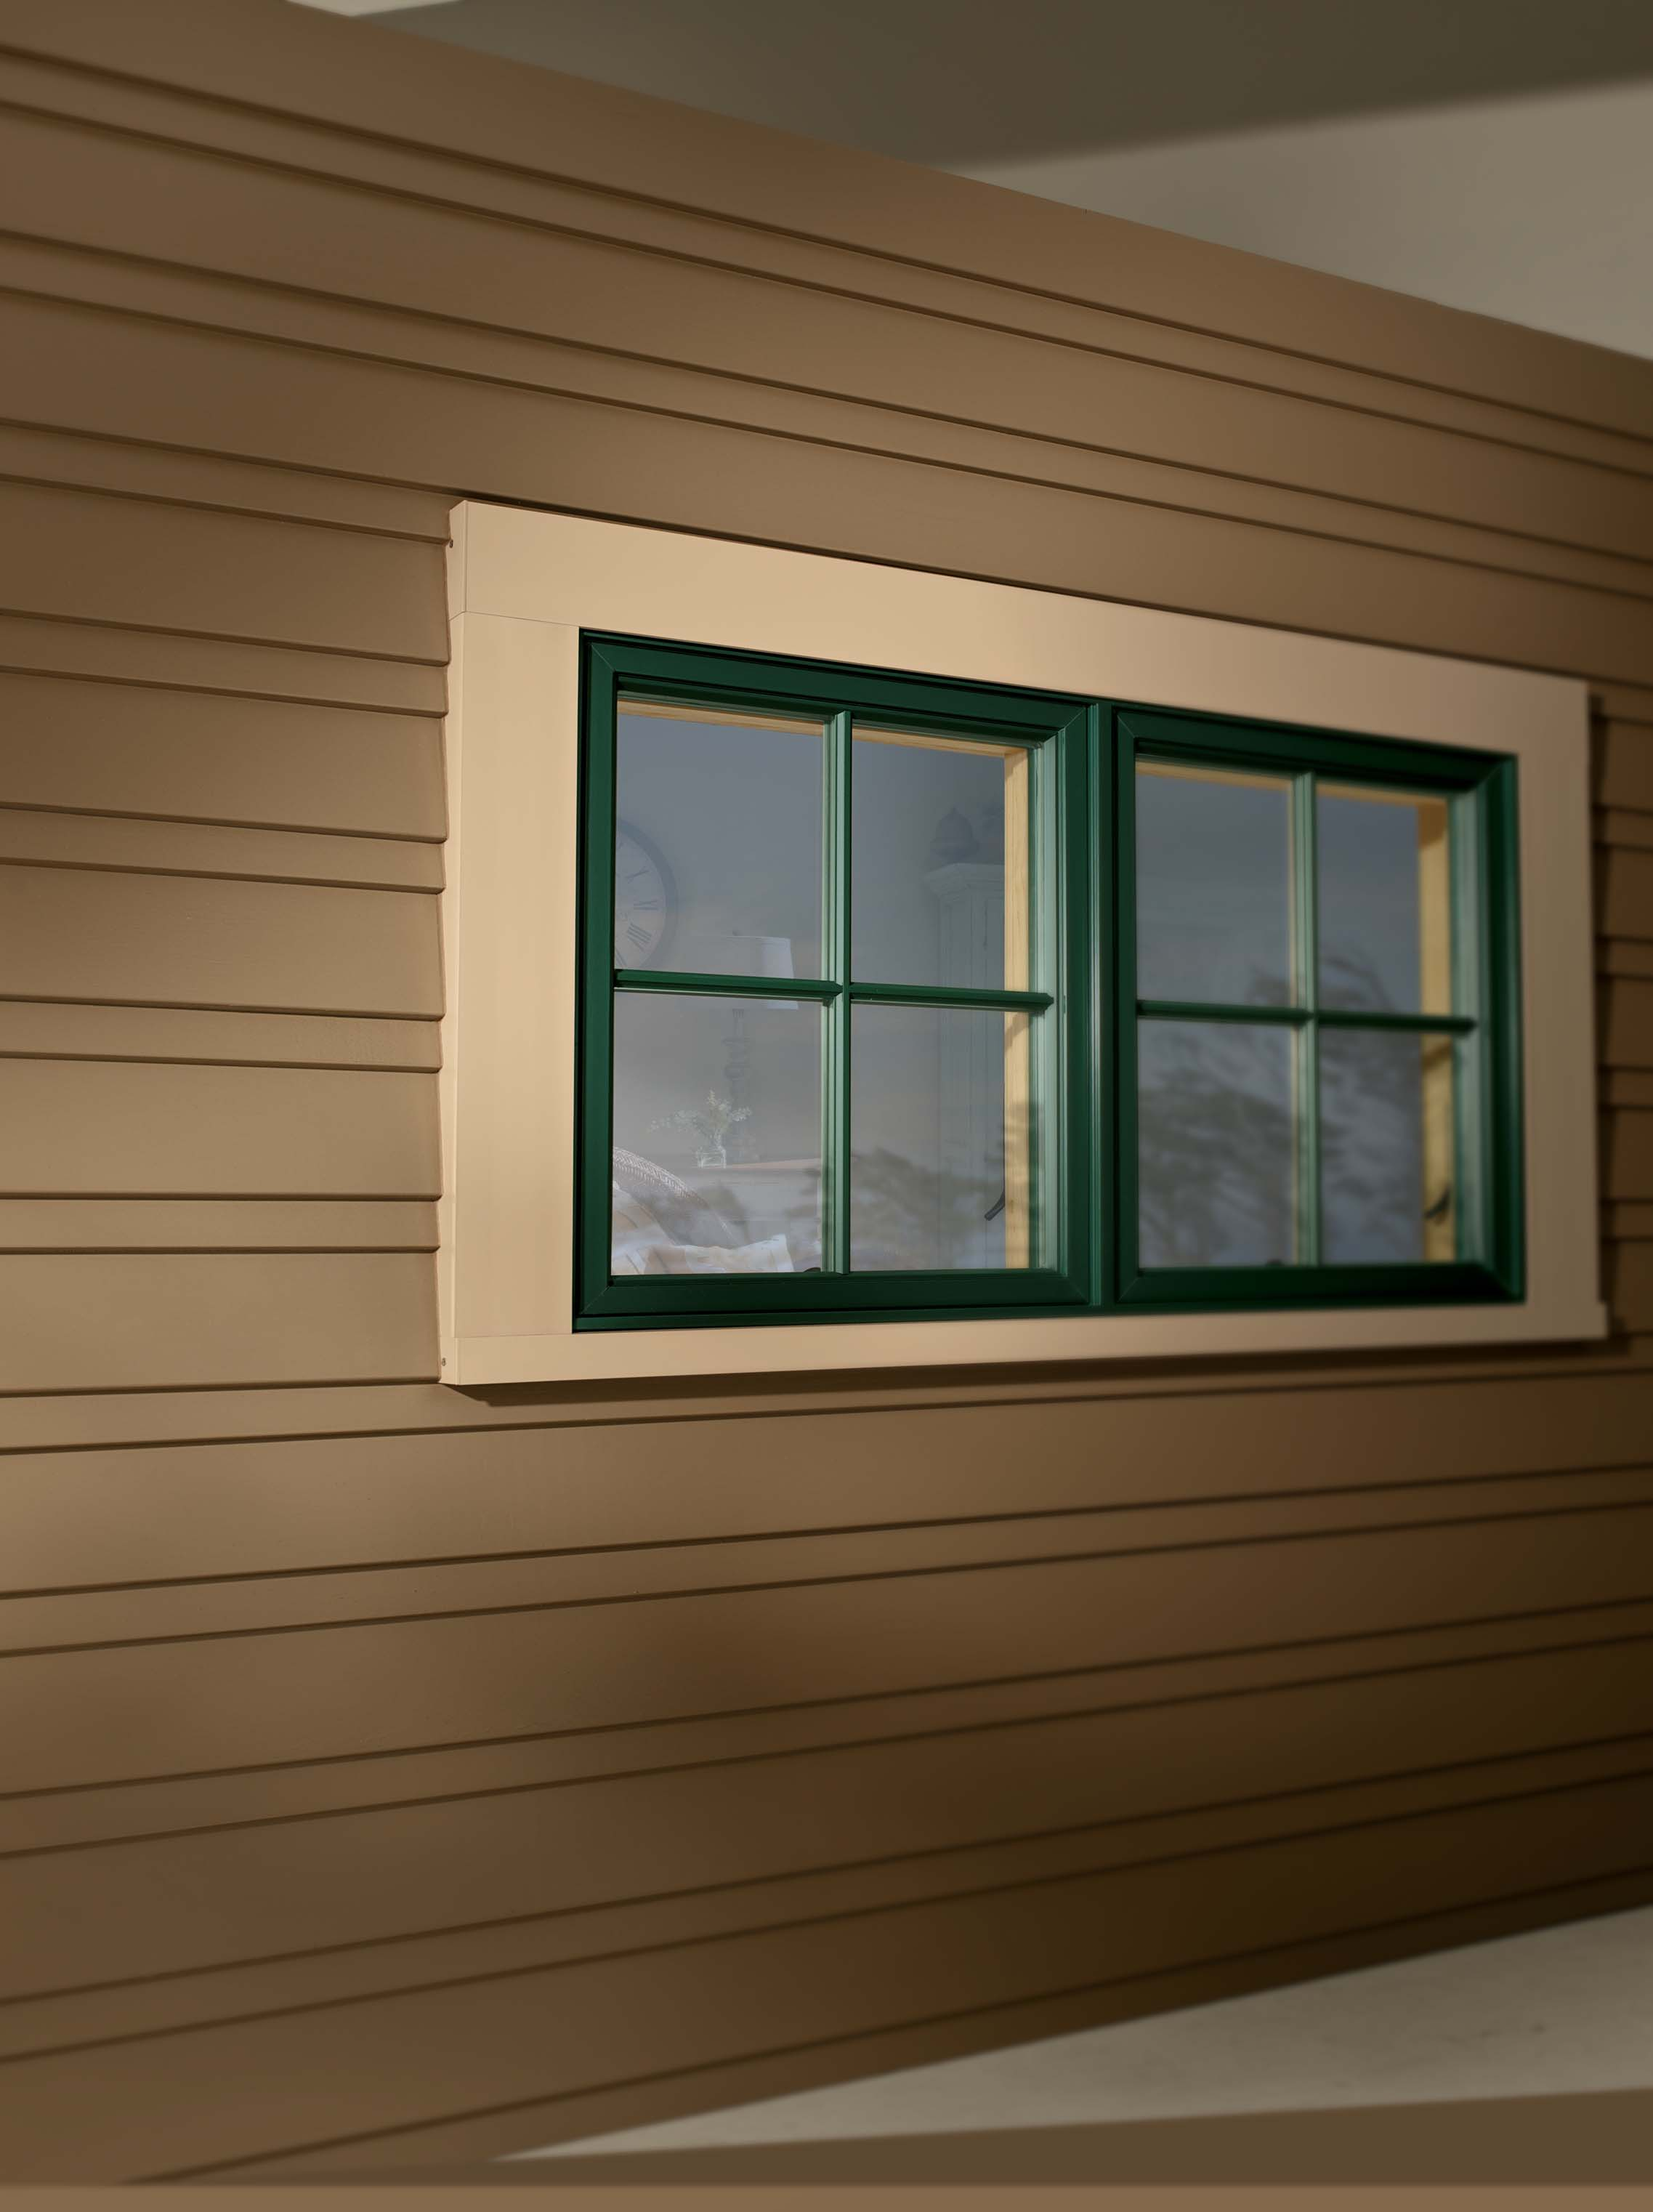 Outside Window Trim Classic Finishing Idea For Perfect Home Plan From Traditional To Urban